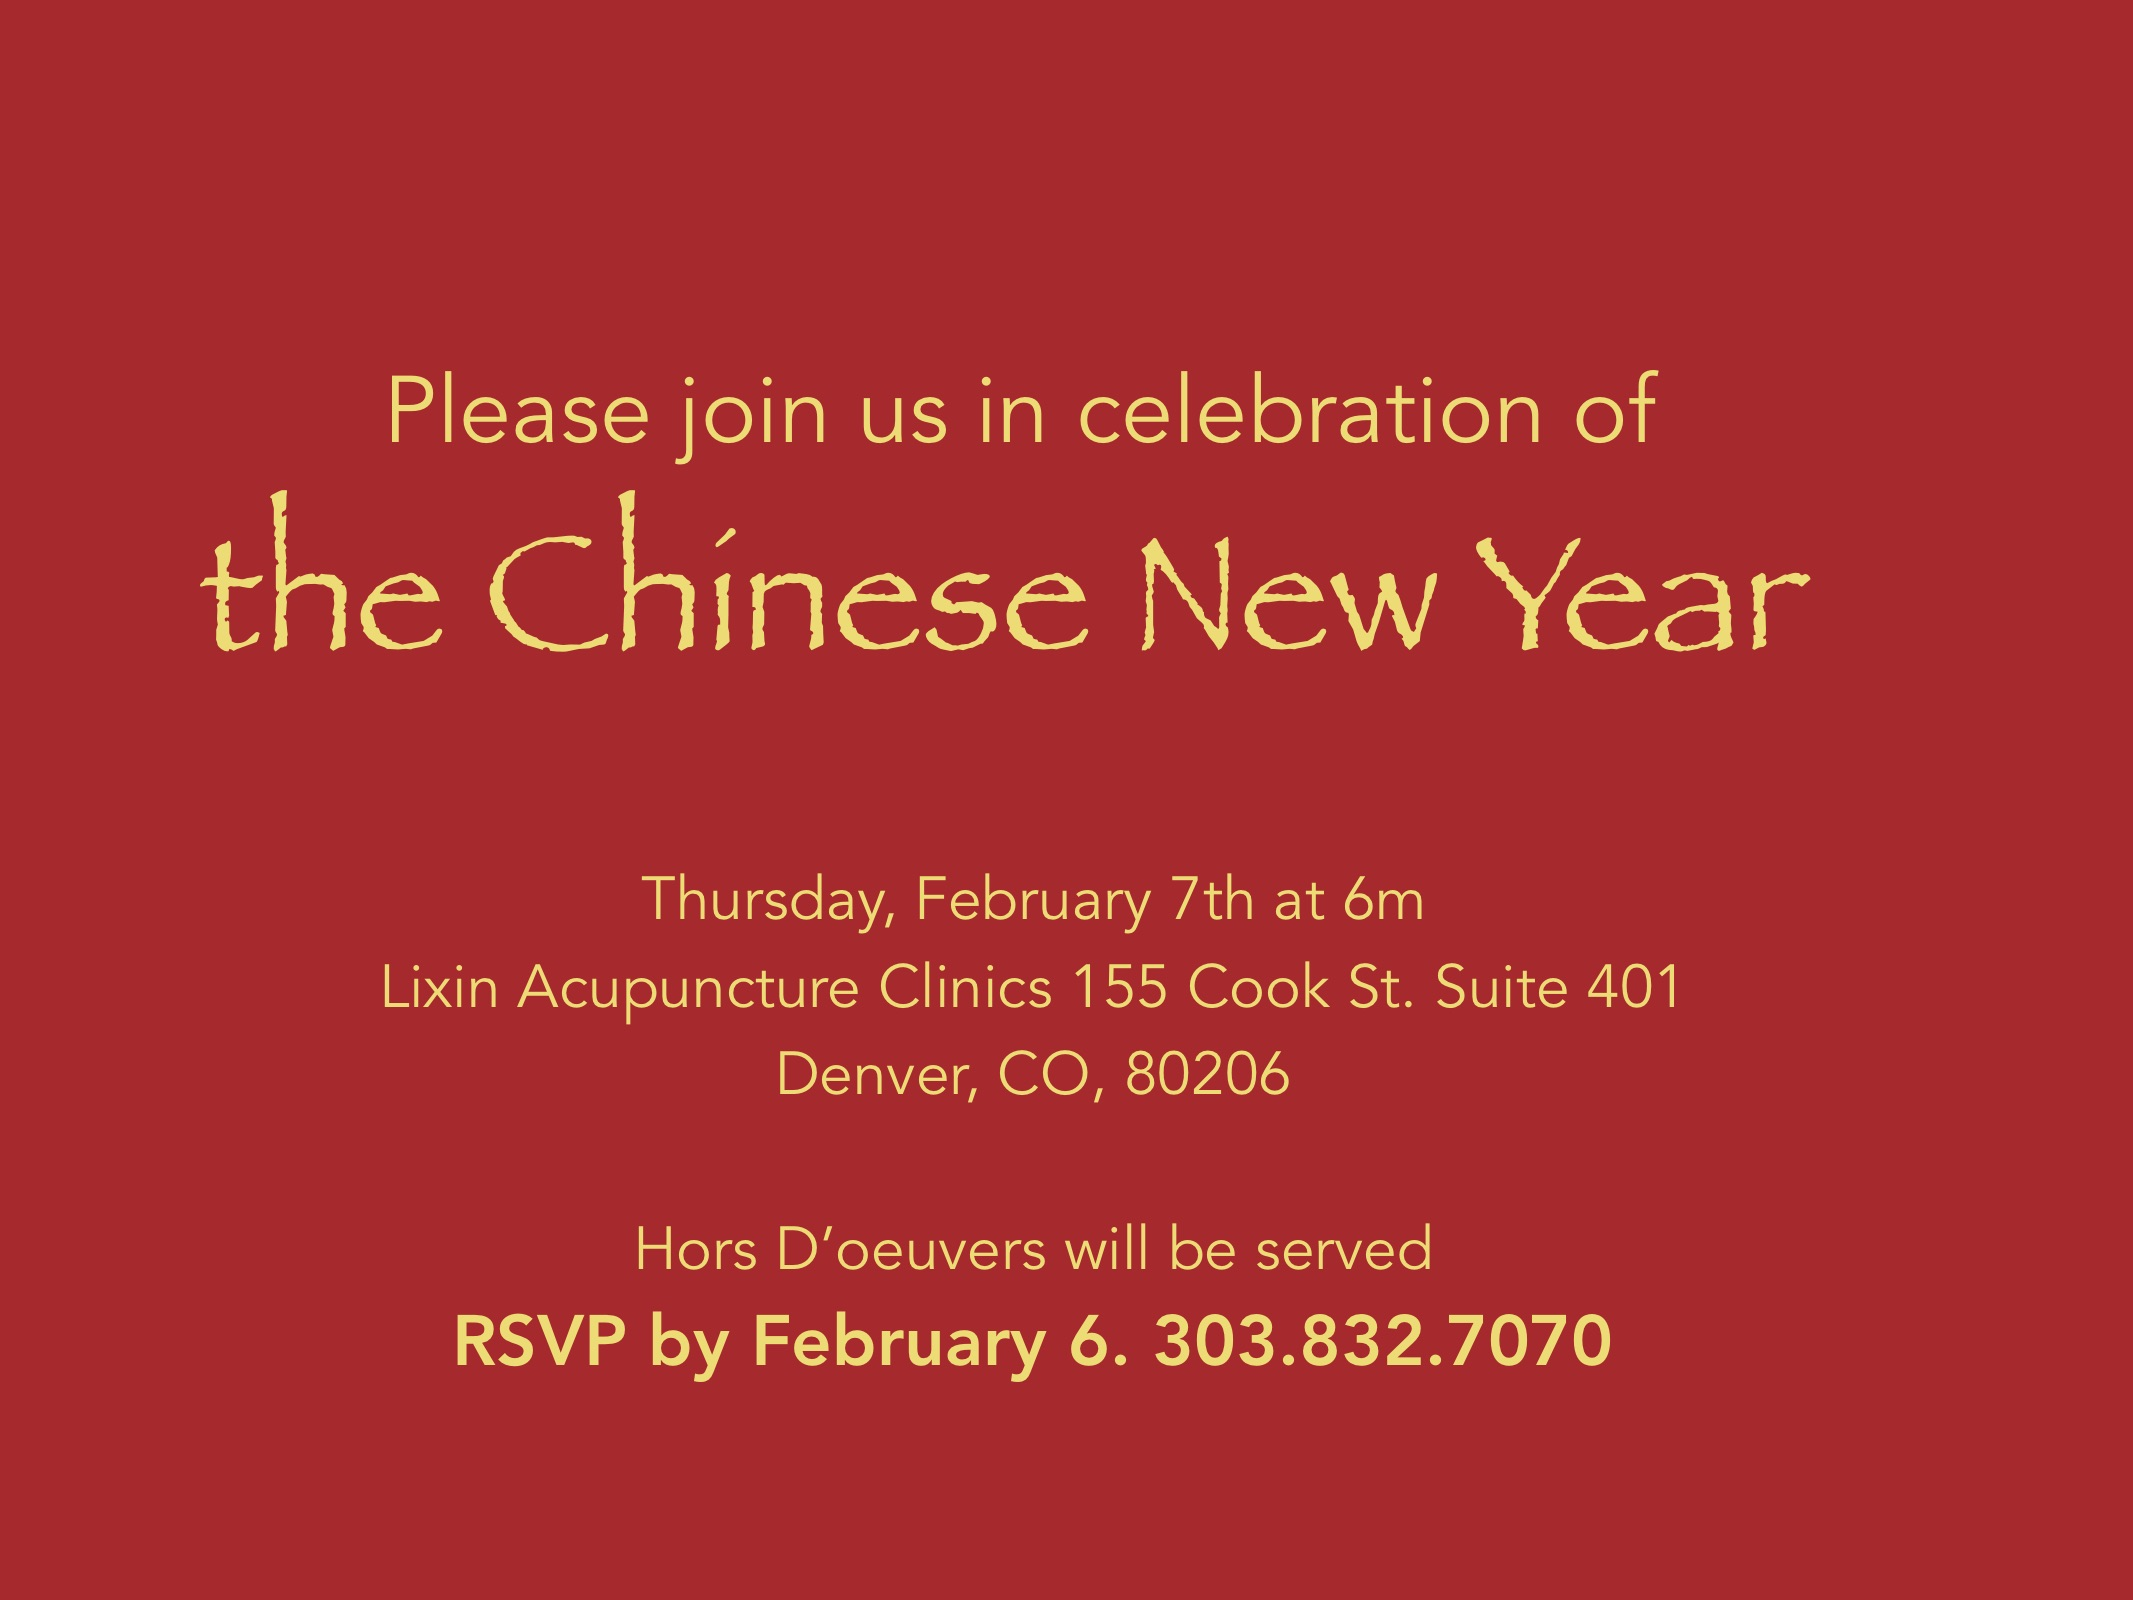 2019 Chinese New Year Invite Front and Back JPEG 2.jpg